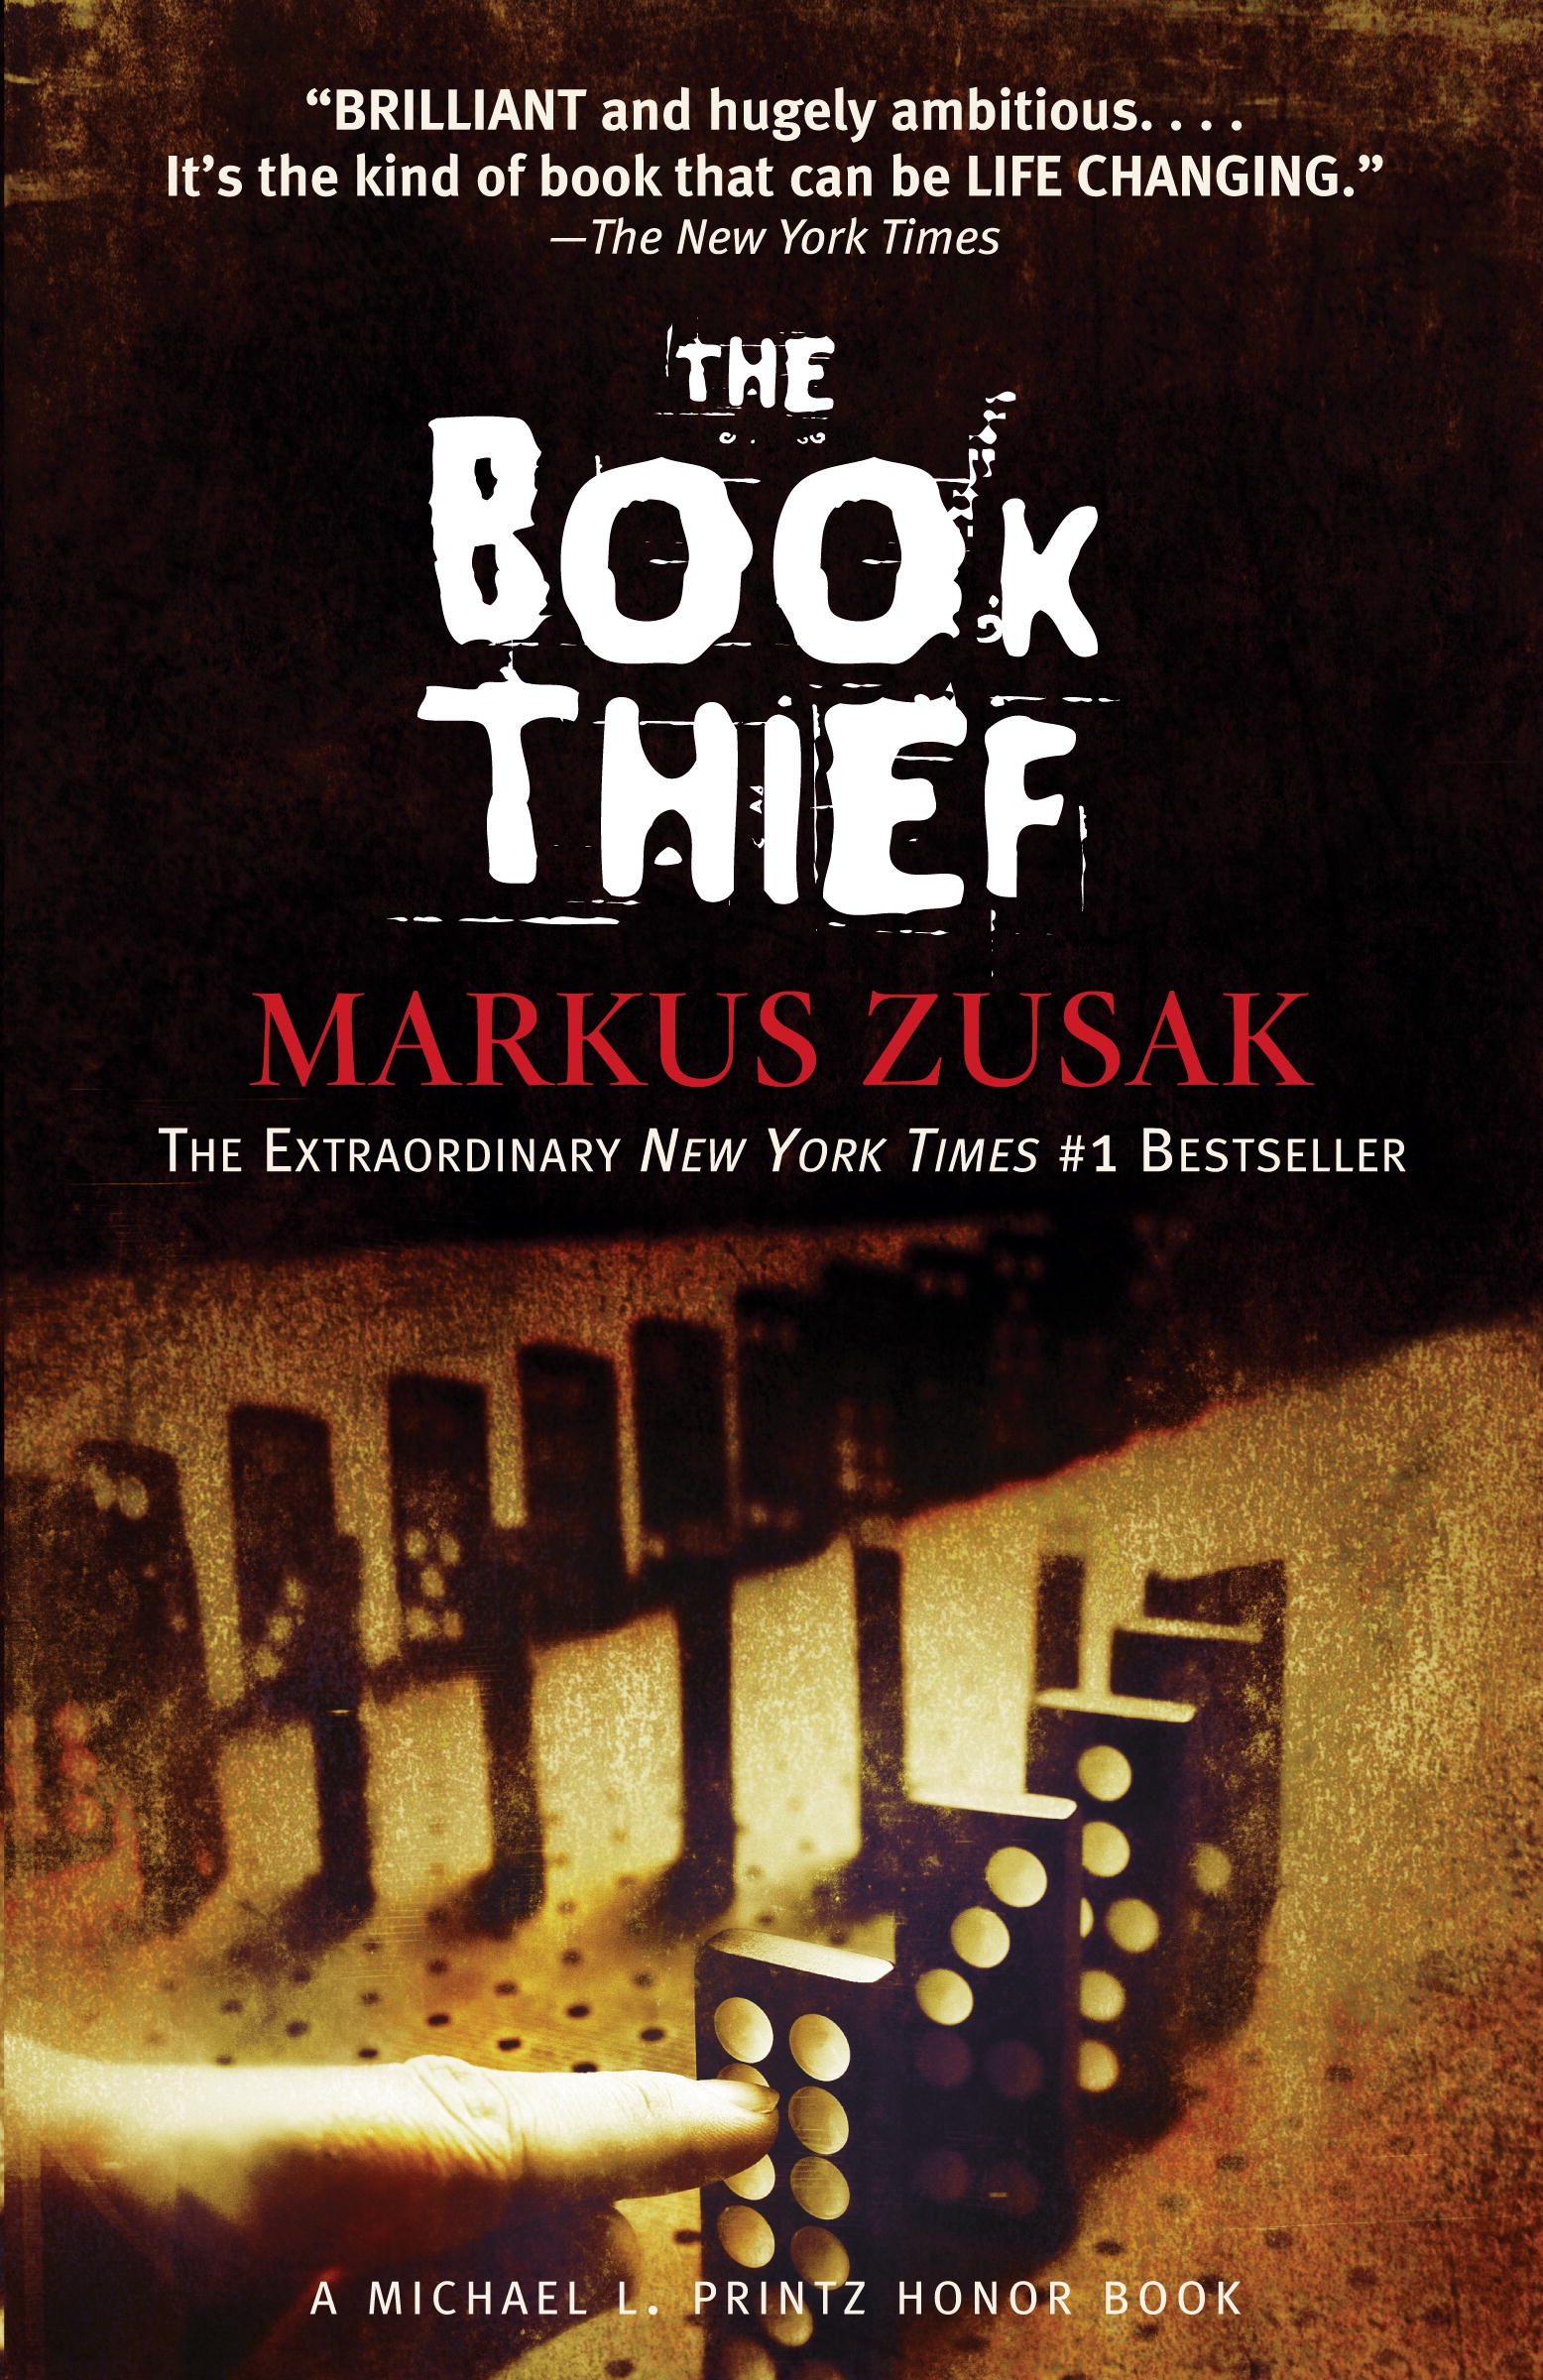 Summer Reading: The Book Thief